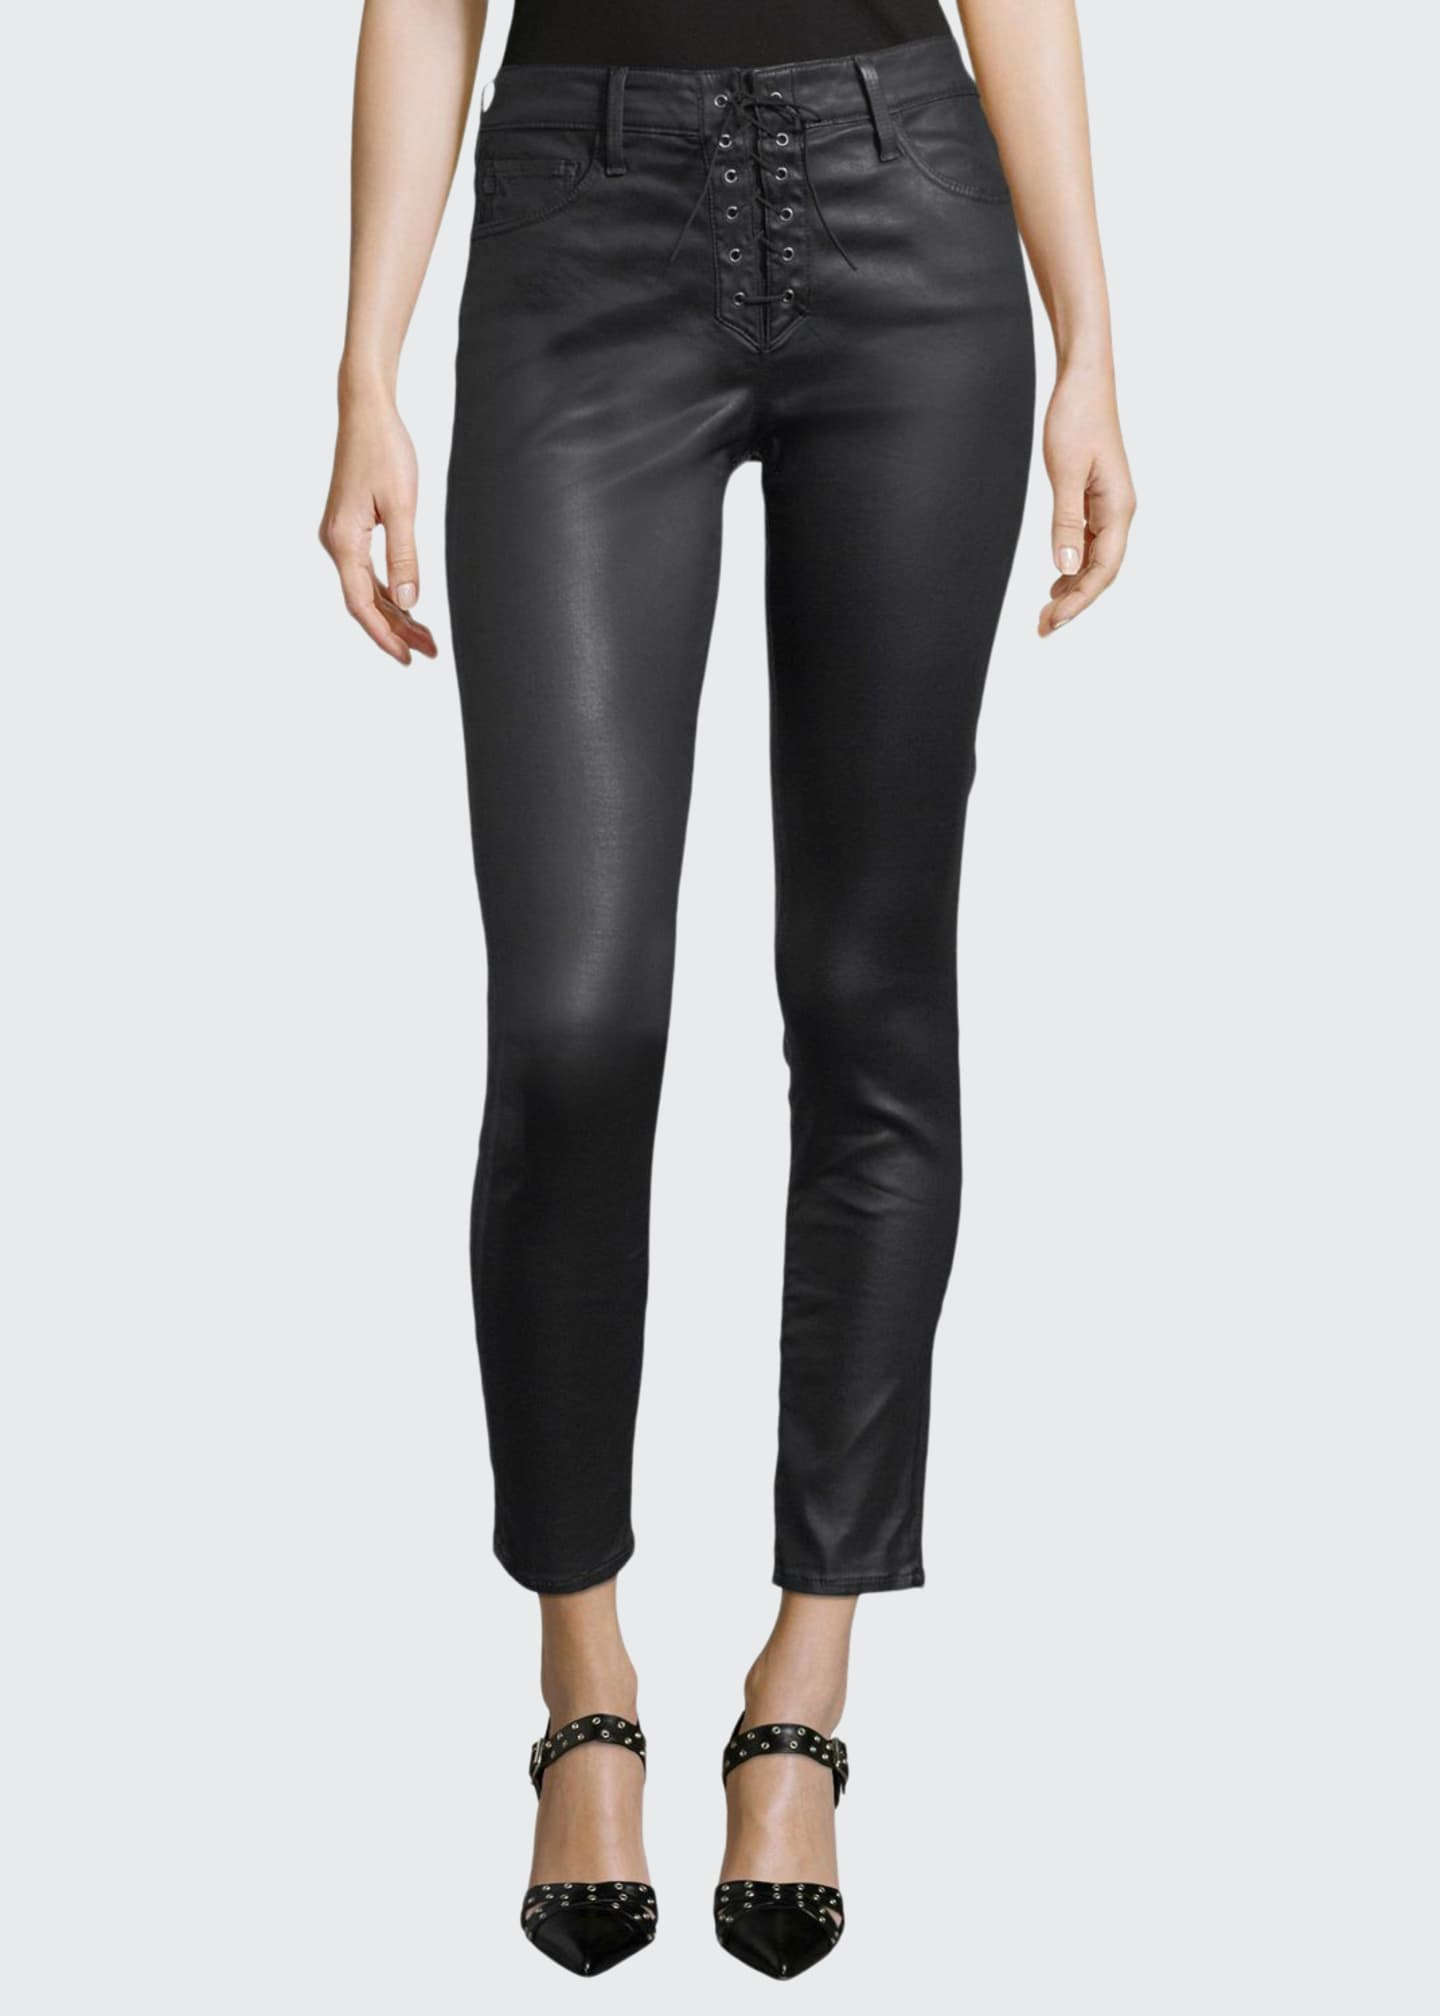 AG Adriano Goldschmied Farrah Lace-Up High-Rise Skinny Ankle